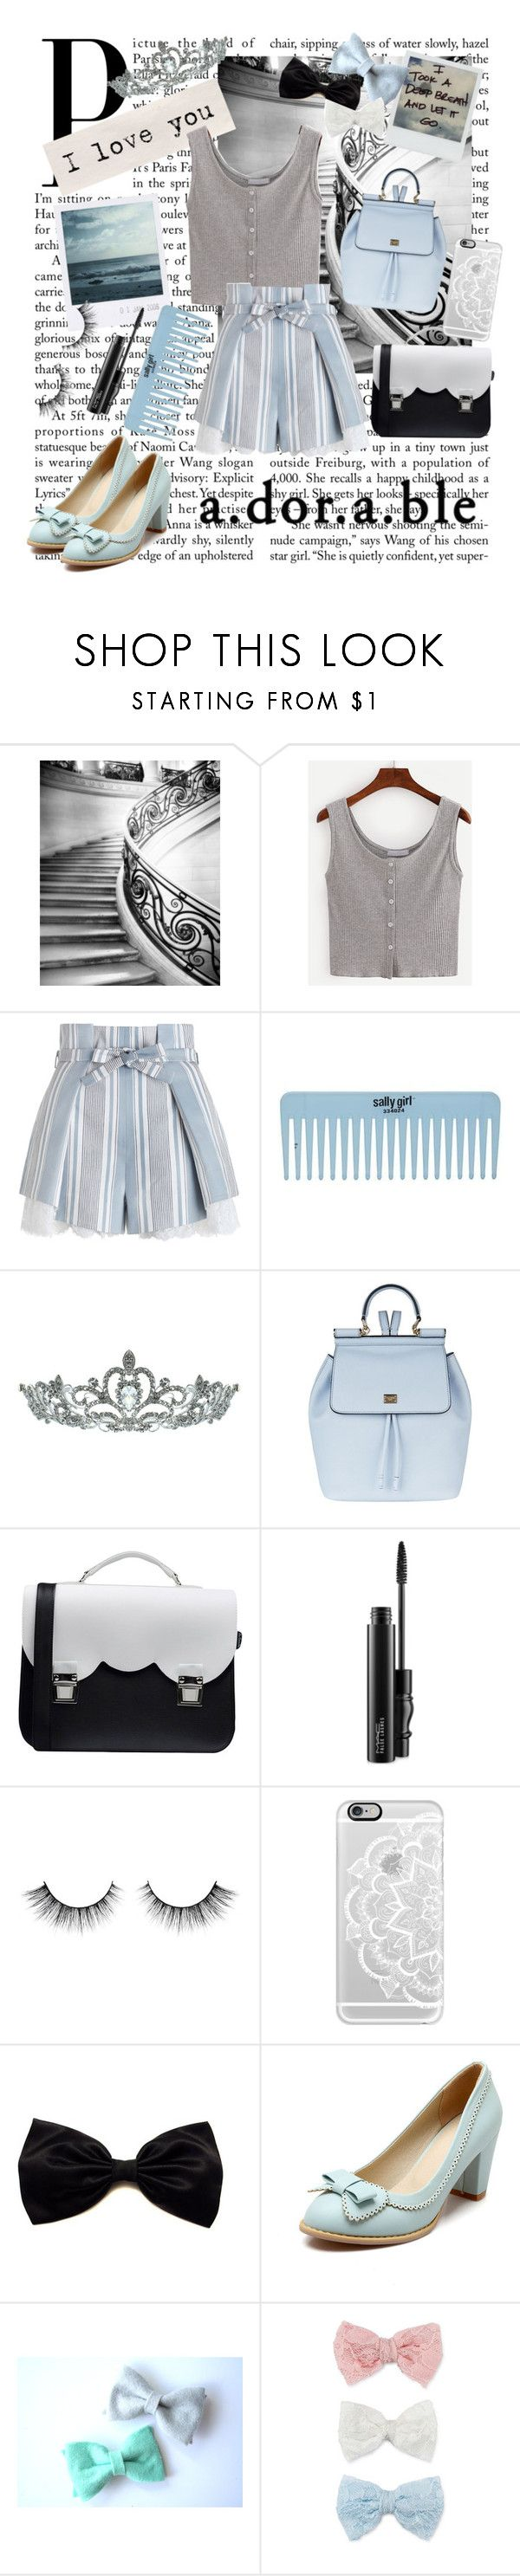 """♡ A•dor•a•ble ♡"" by vnghe ❤ liked on Polyvore featuring Zimmermann, Kate Marie, Dolce&Gabbana, La Cartella, MAC Cosmetics, Casetify, Polaroid and Decree"